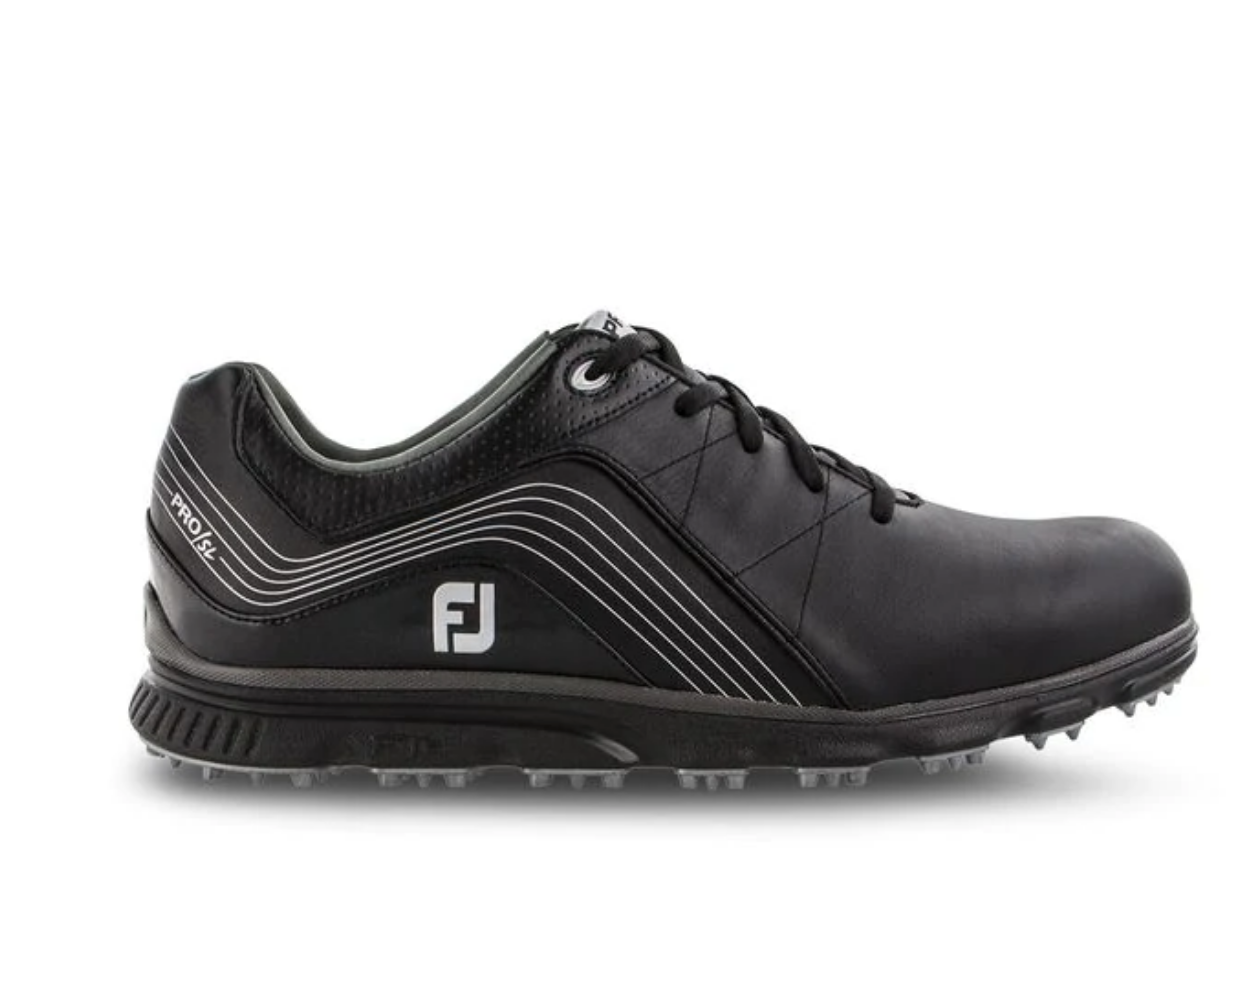 Pro SL Spkl Men Black /Charcoal